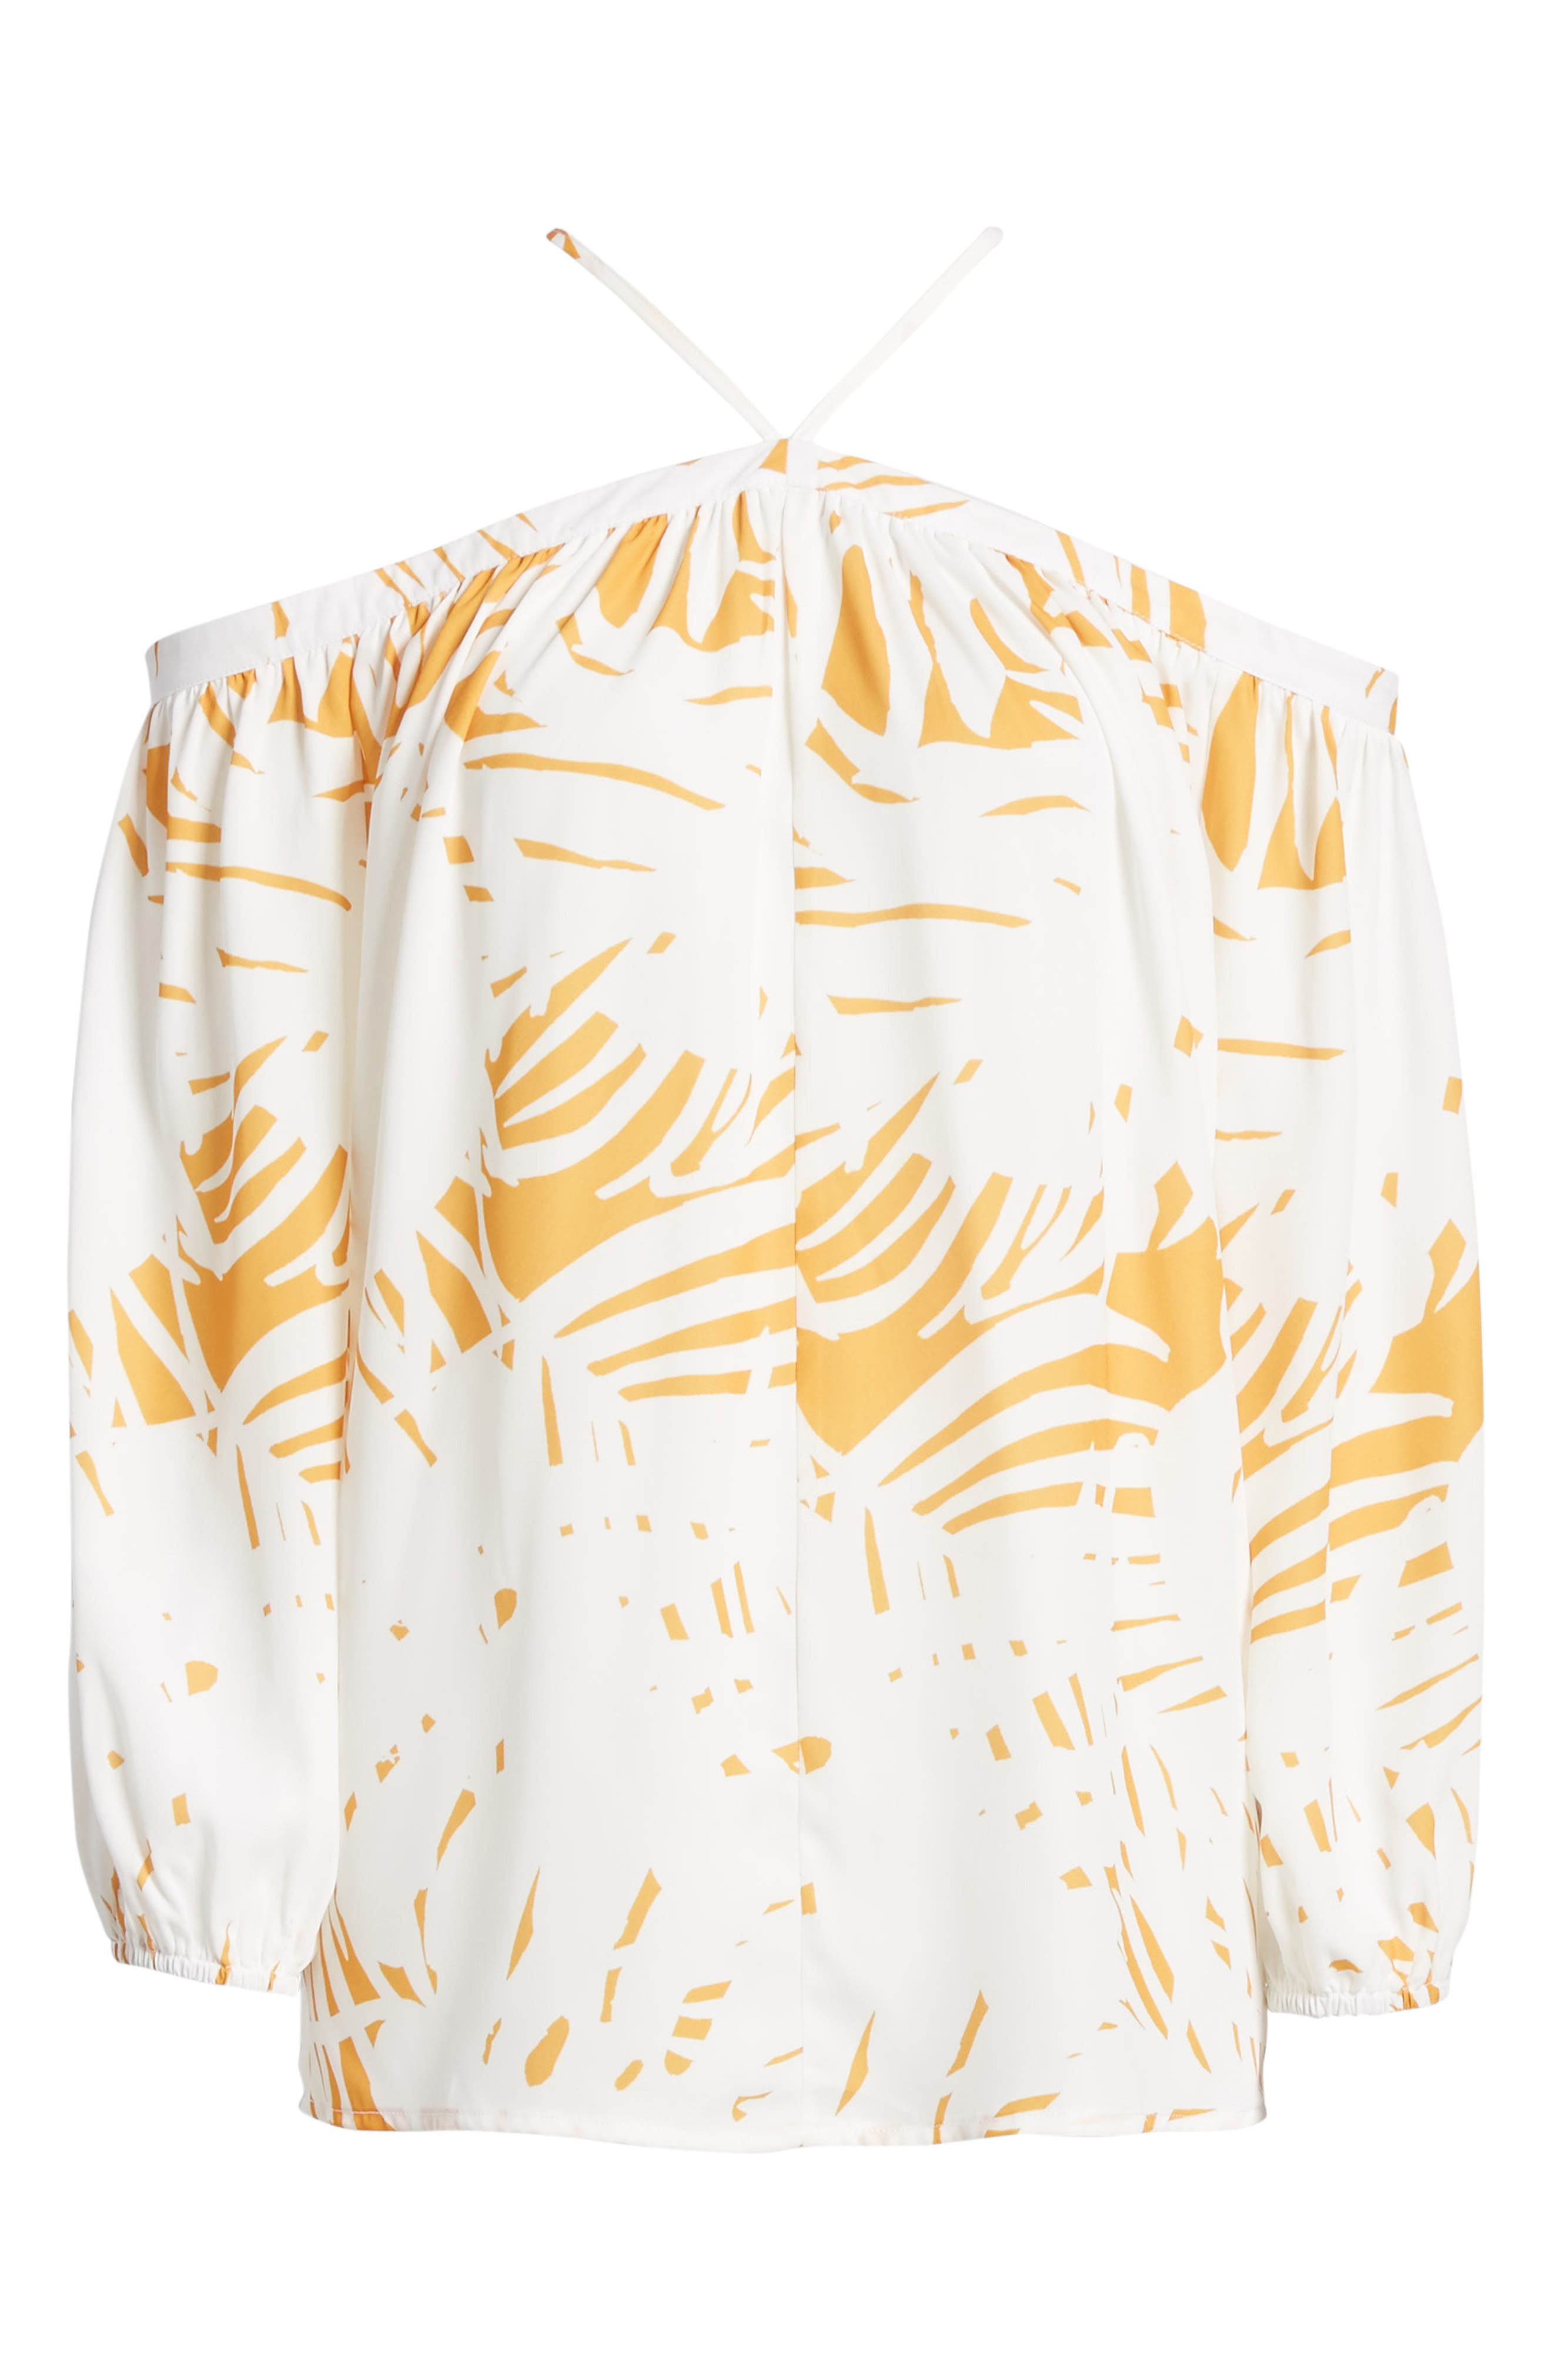 Bishop + Young Ana Palm Print Off the Shoulder Top,                             Alternate thumbnail 7, color,                             Riviera Print